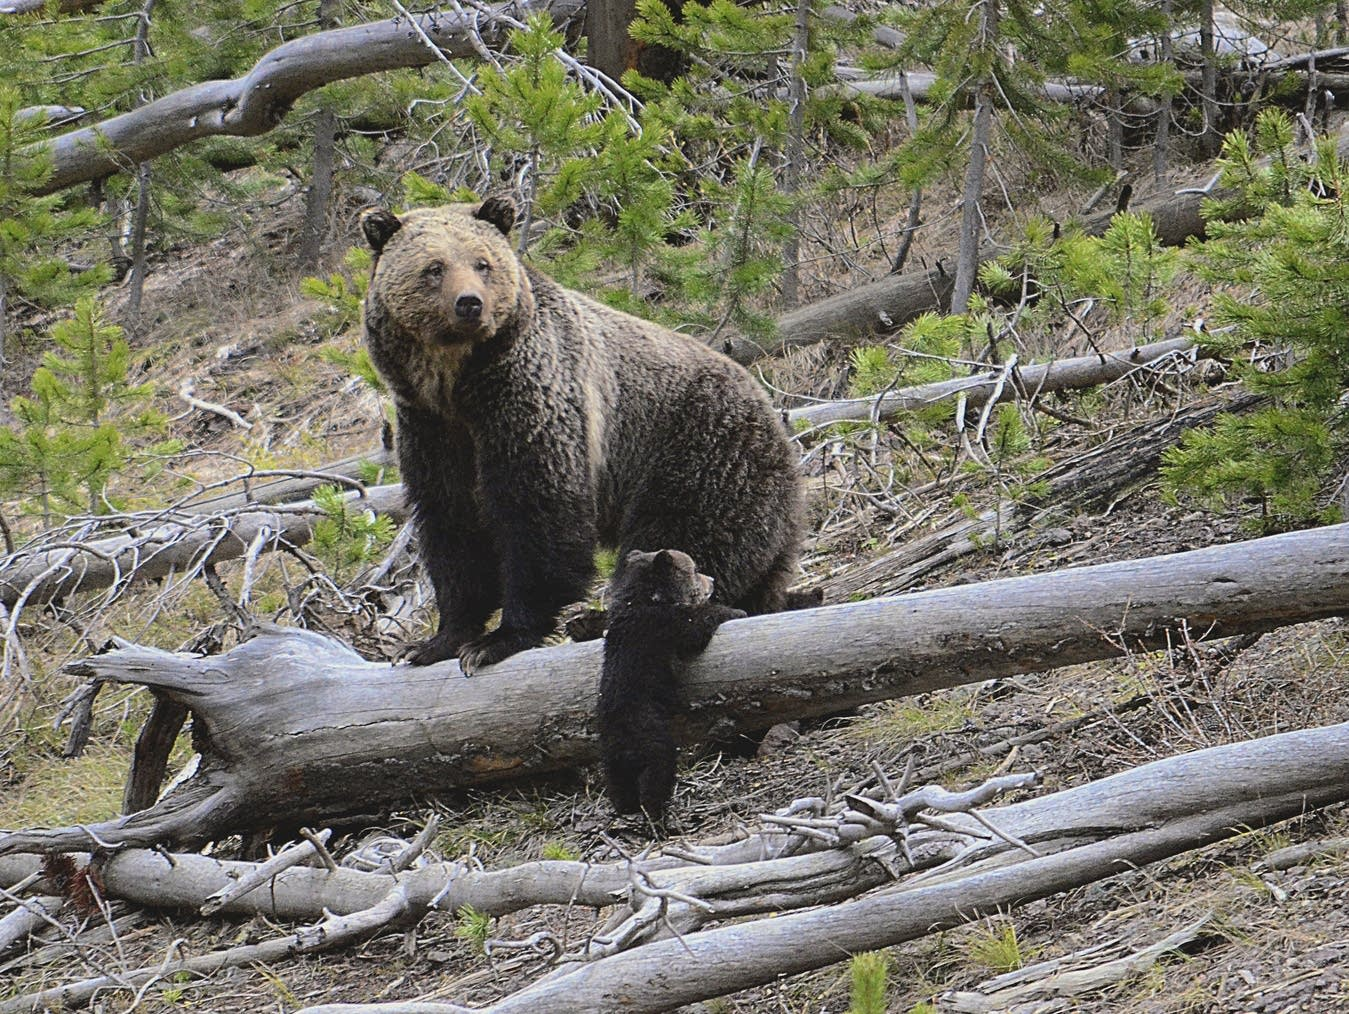 A grizzly bear and a cub are seen along the Gibbon River